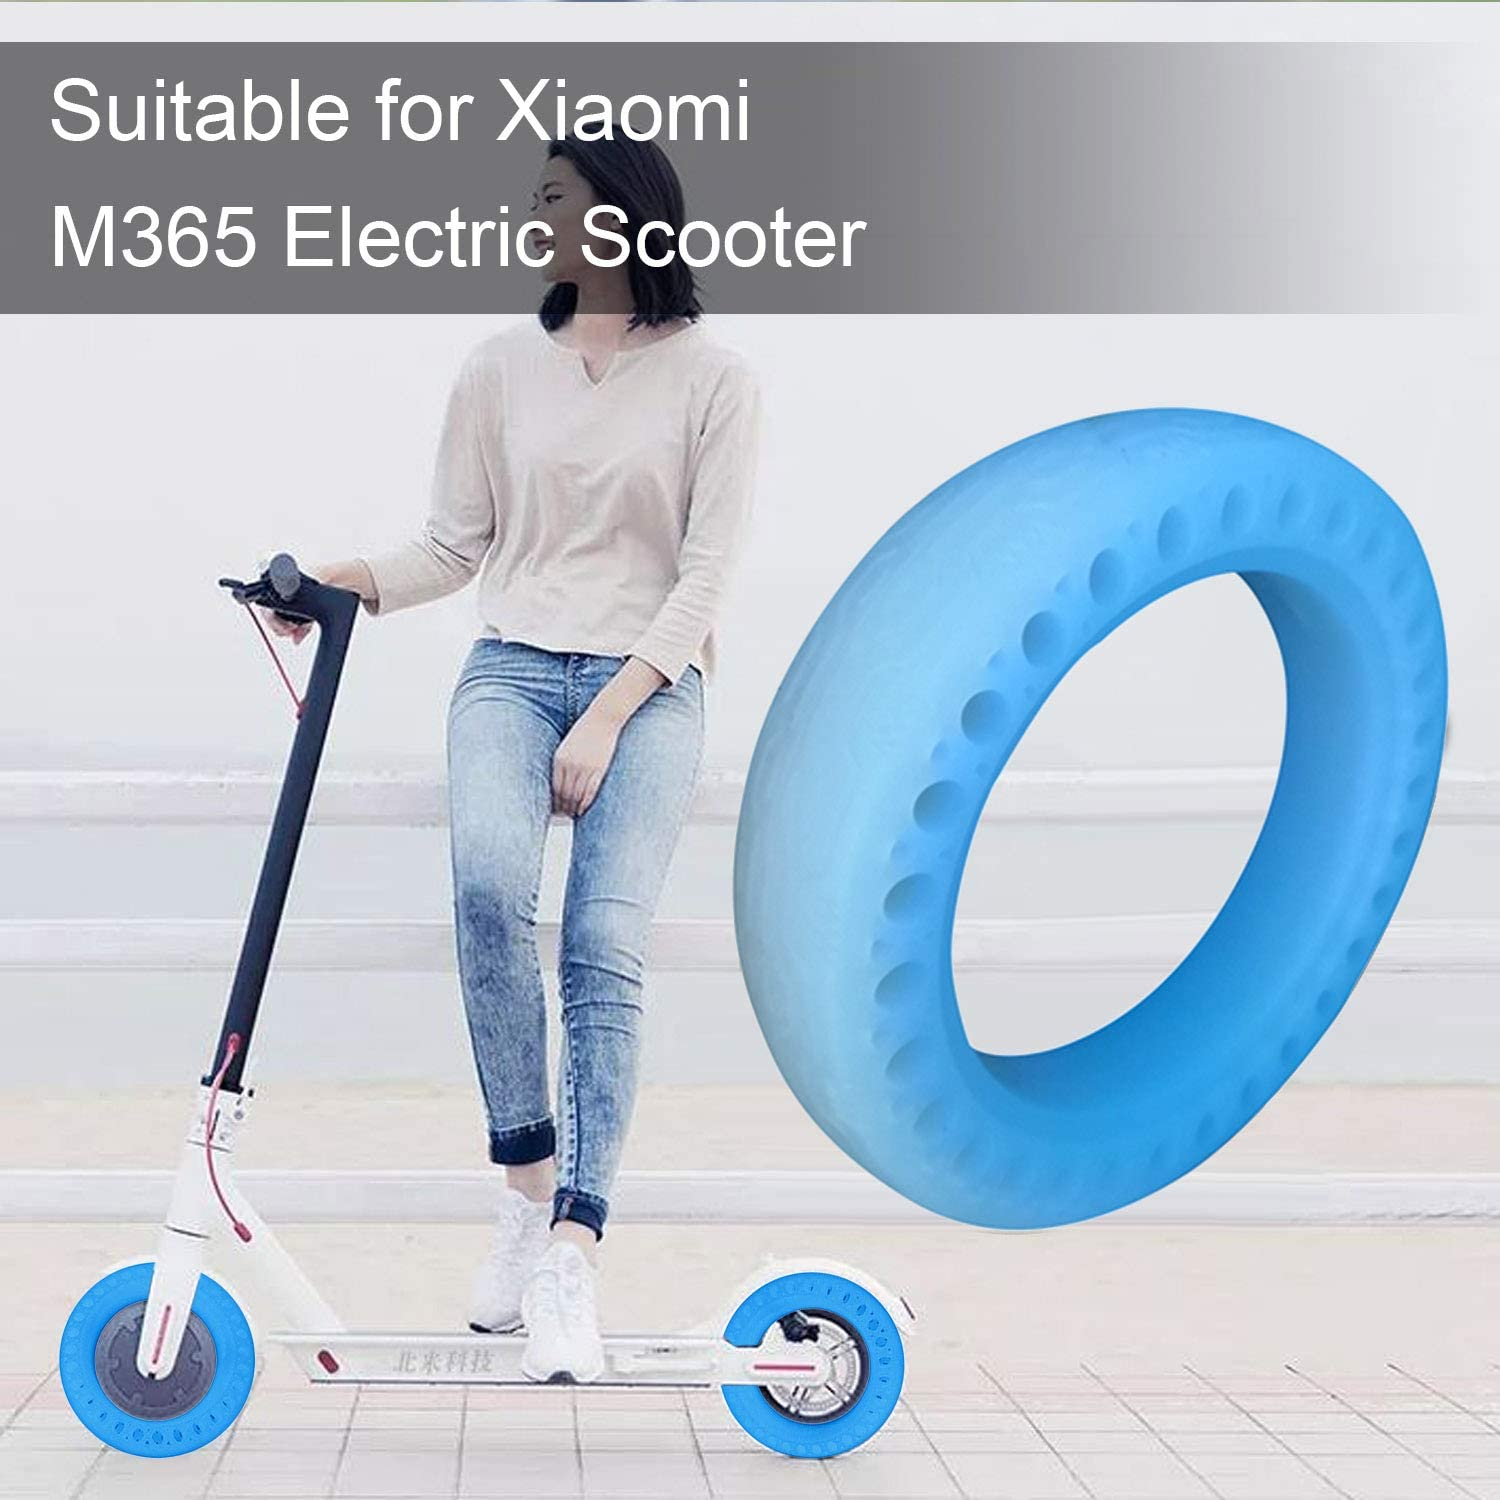 Bemars Honeycomb Hole Solid Tubes Replacement Tyre Tires Compatible with Xiaomi Xiao Mi Mijia M365 Electric Scooter